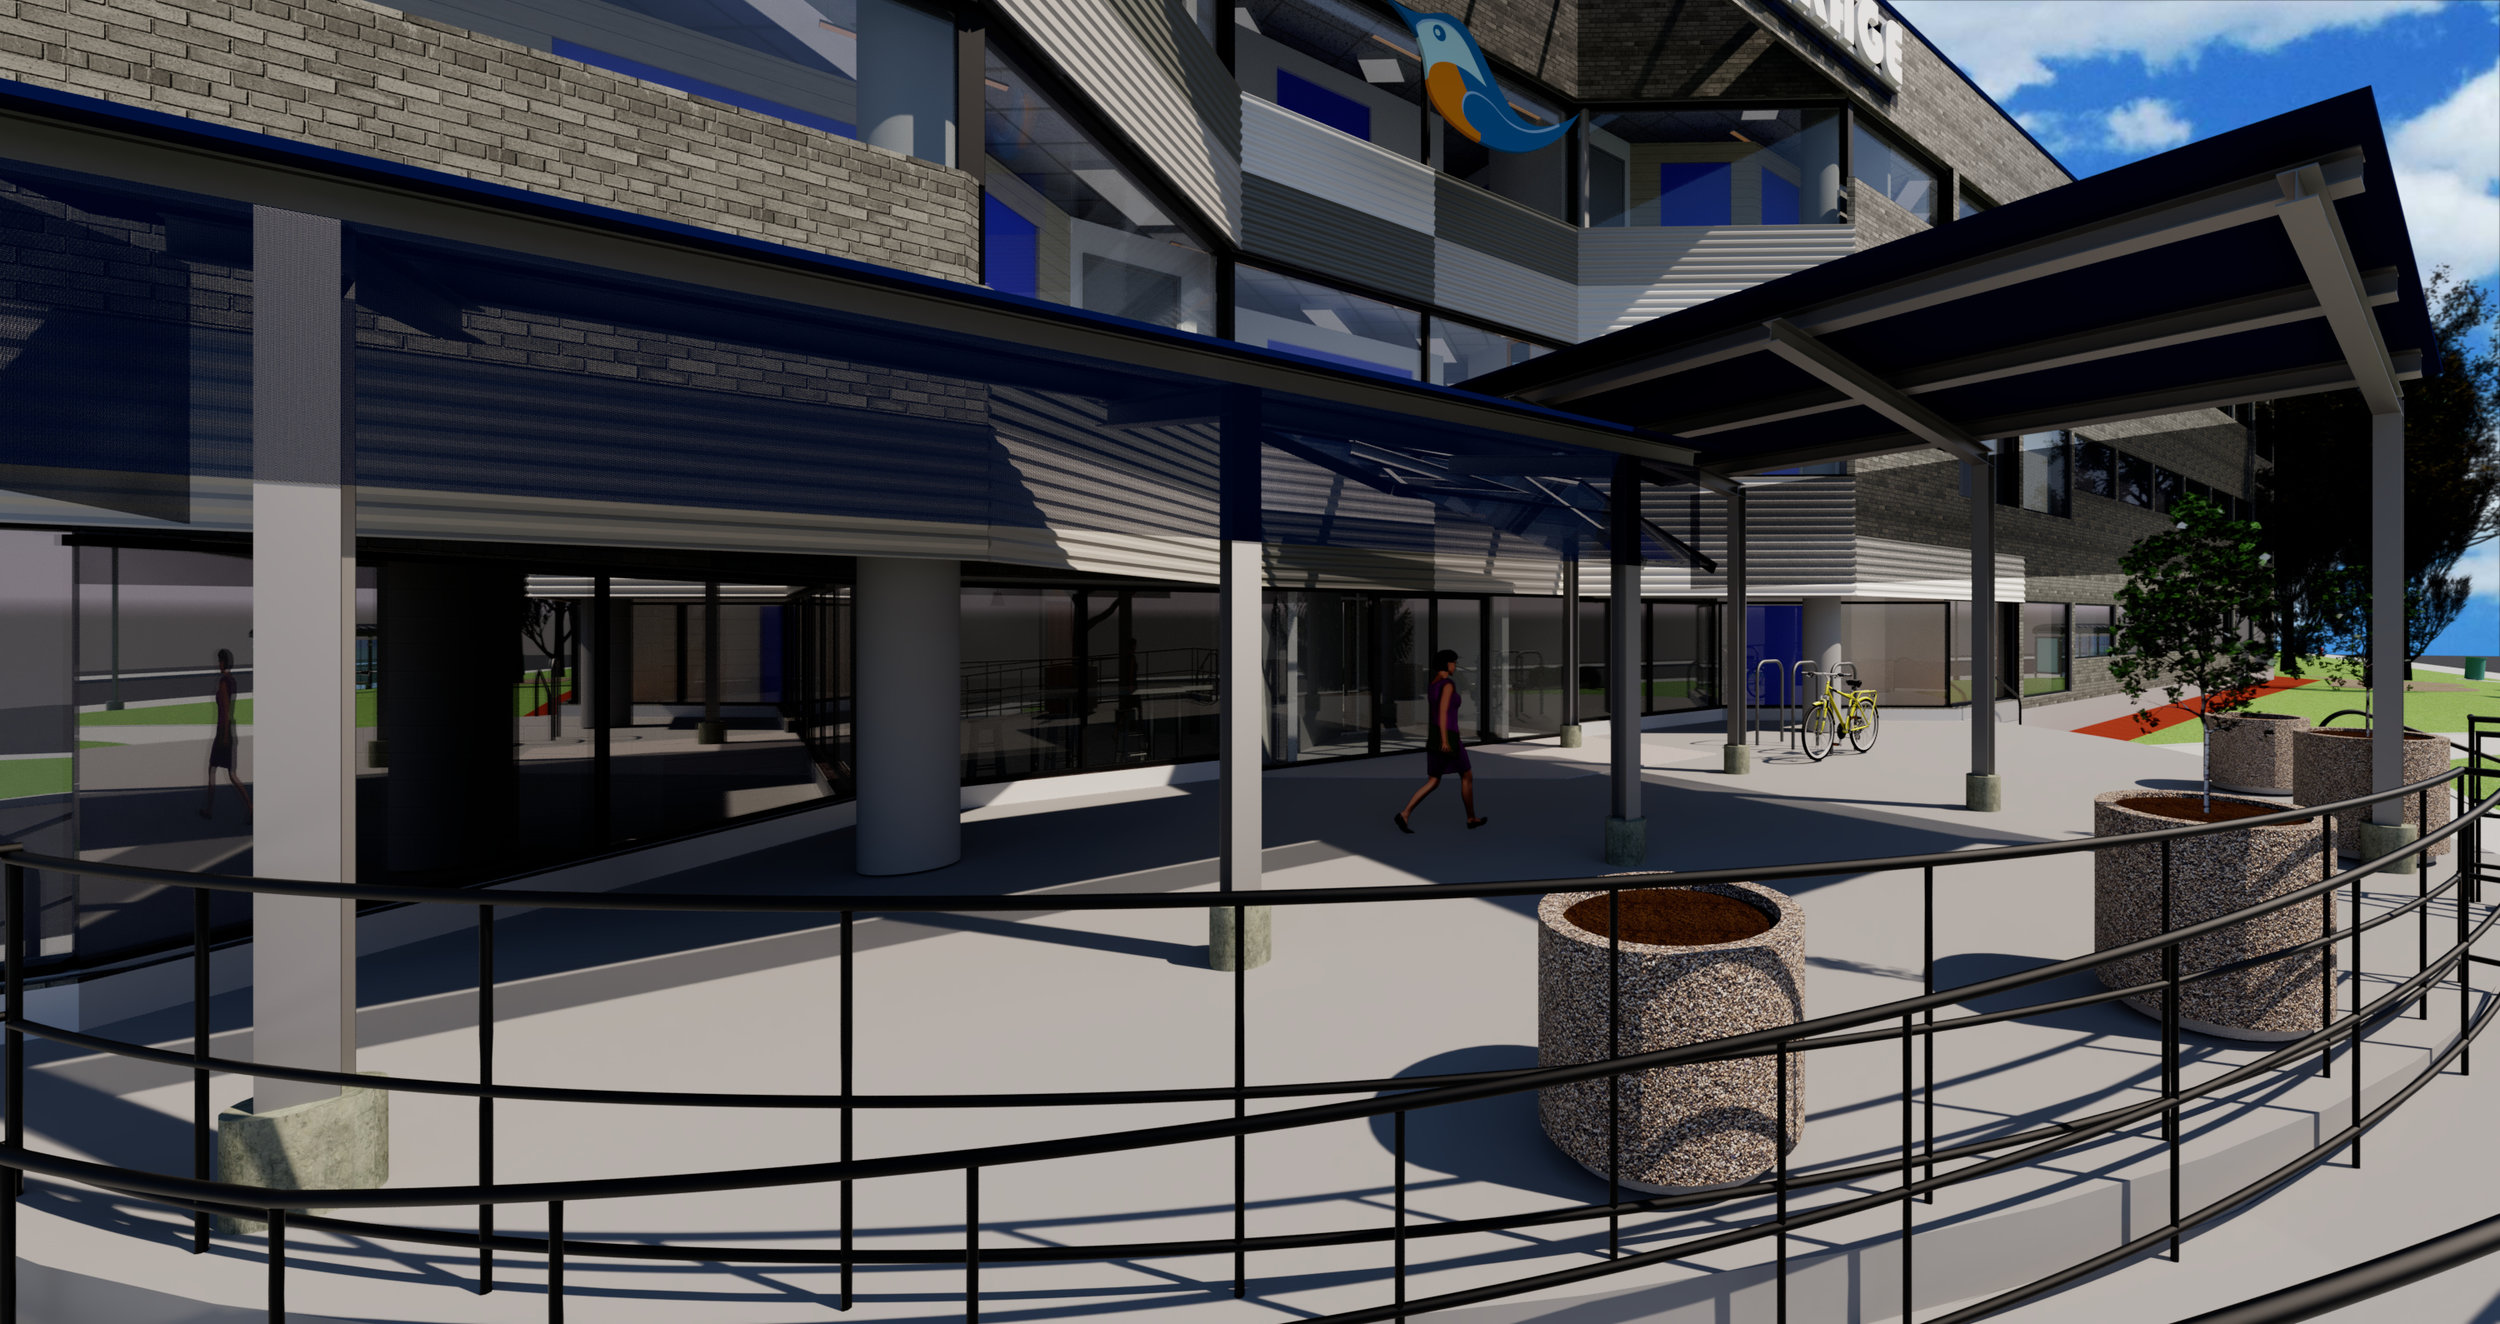 Renderings of the new Don Mills Bluebird Self Storage in Toronto. Image: Bluebird Self Storage